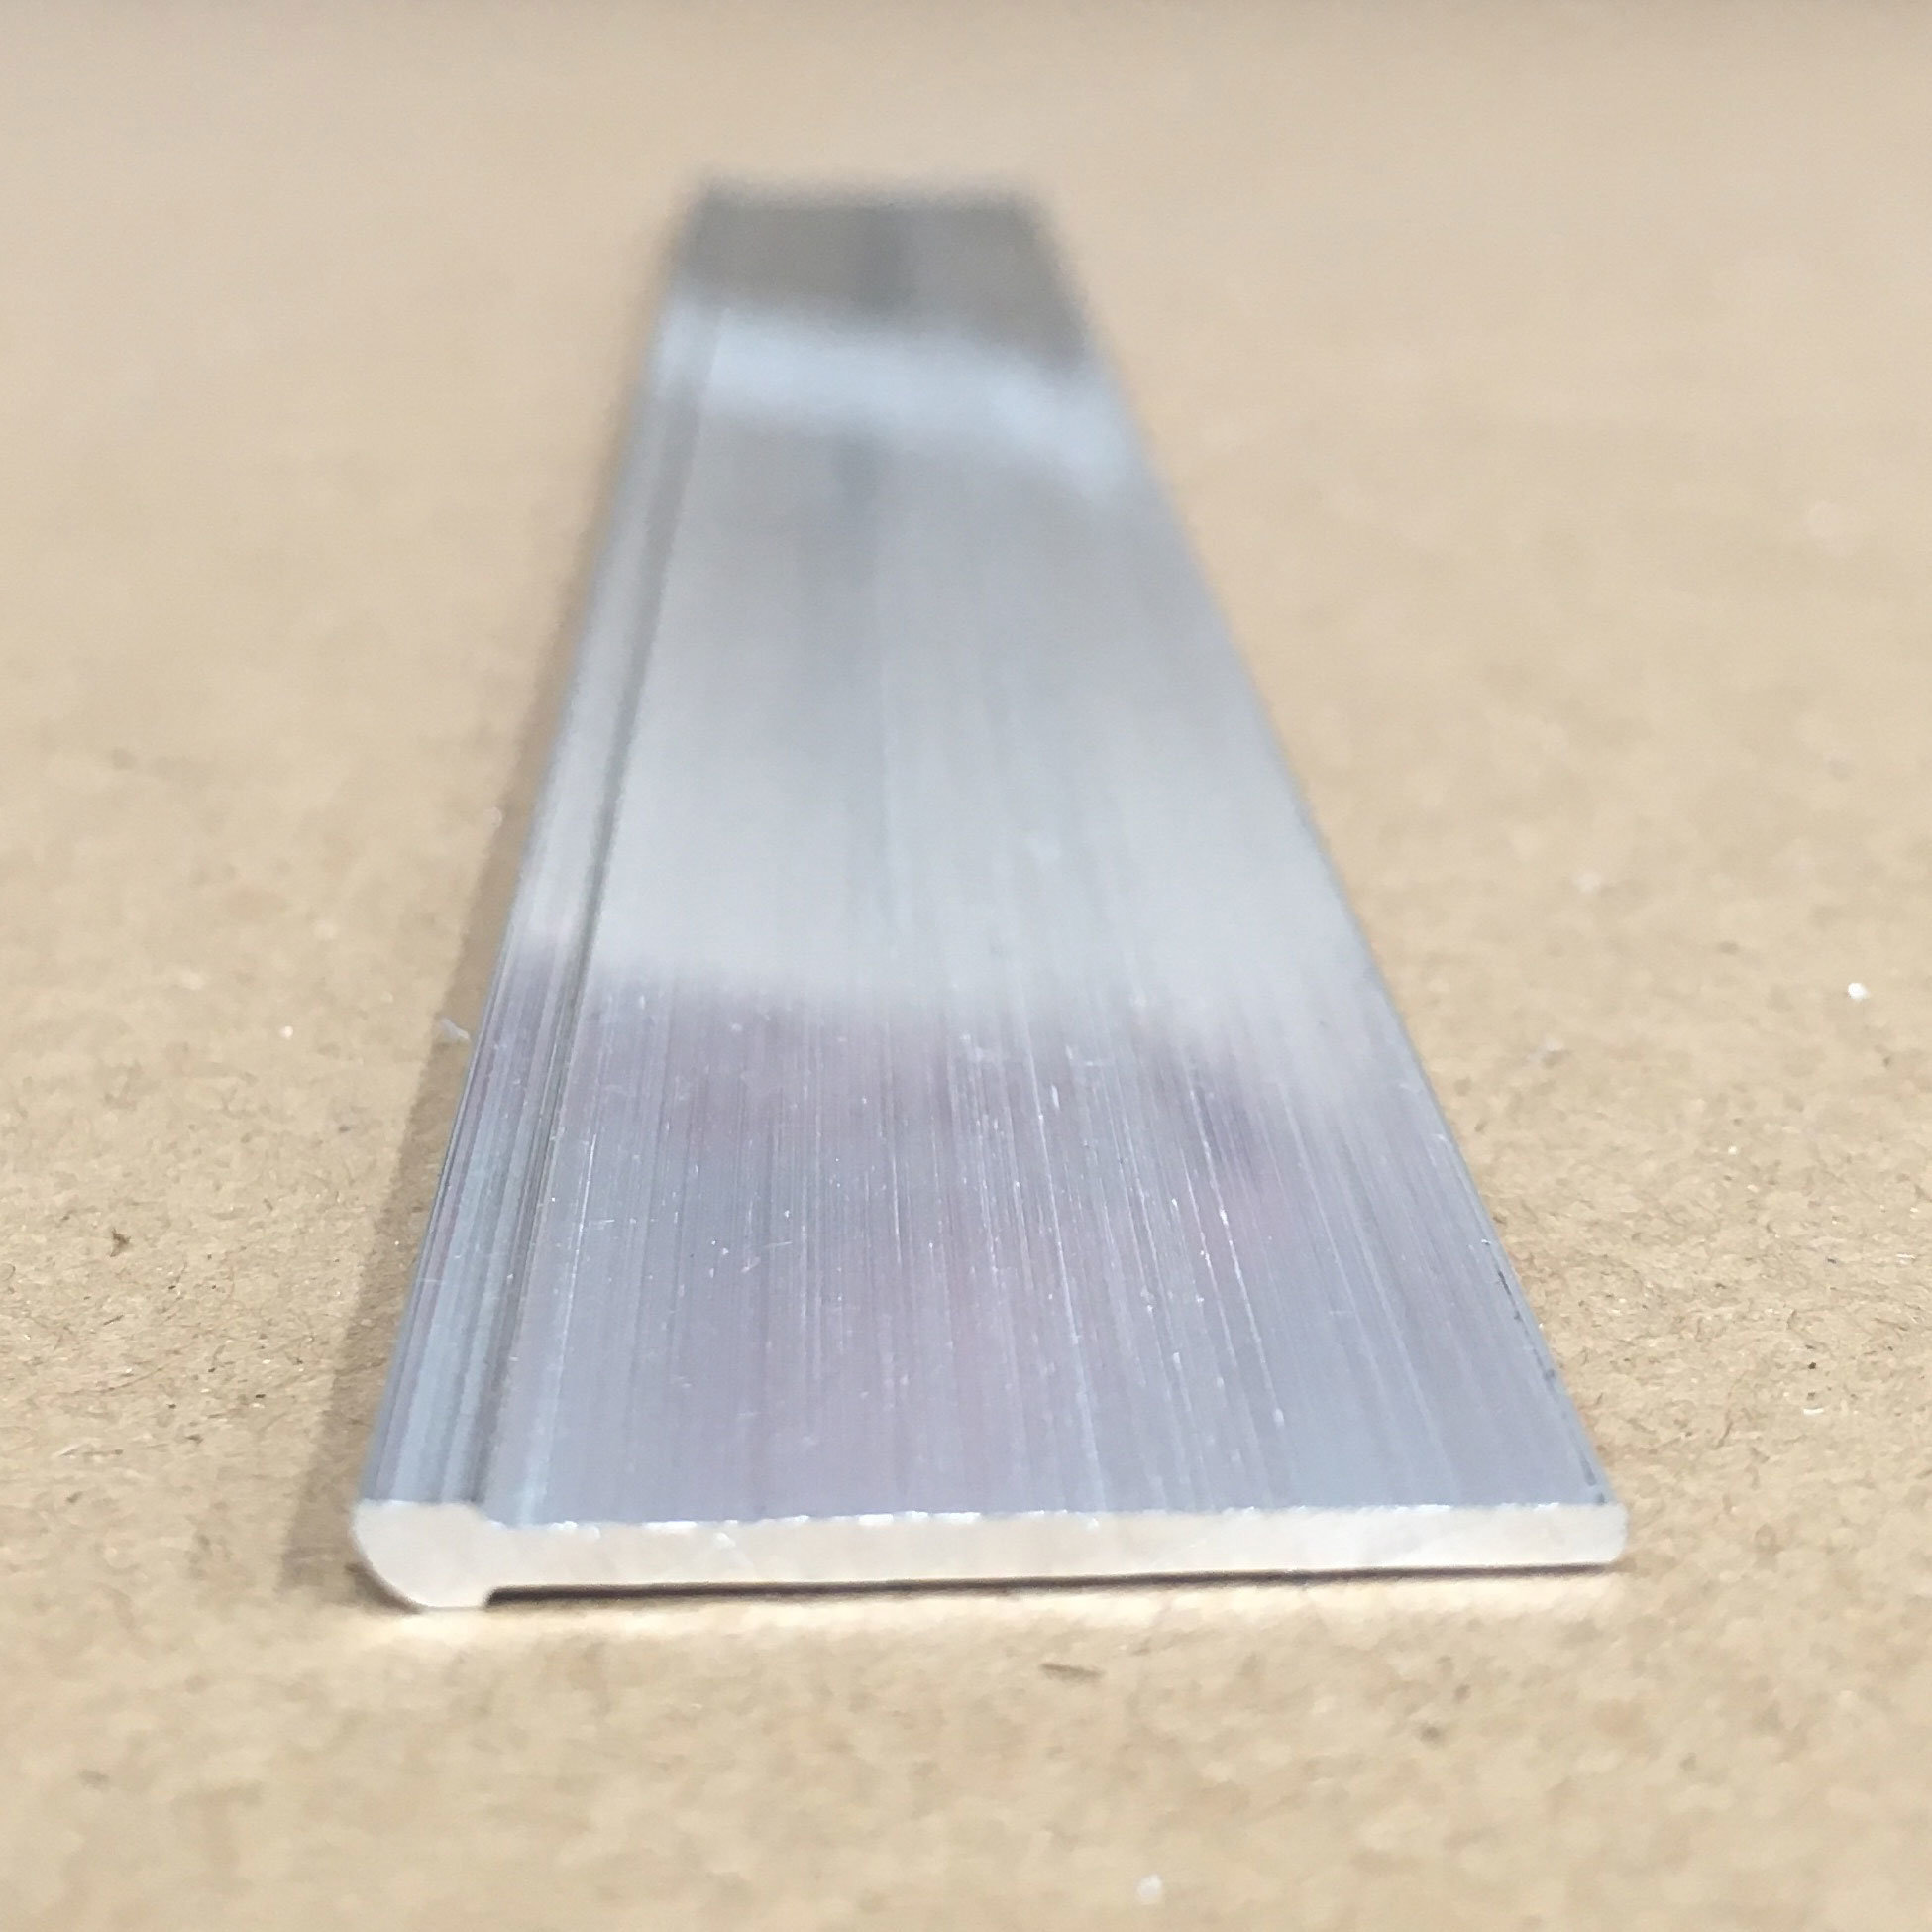 Extruded Aluminium Bar for SIM Card Tray